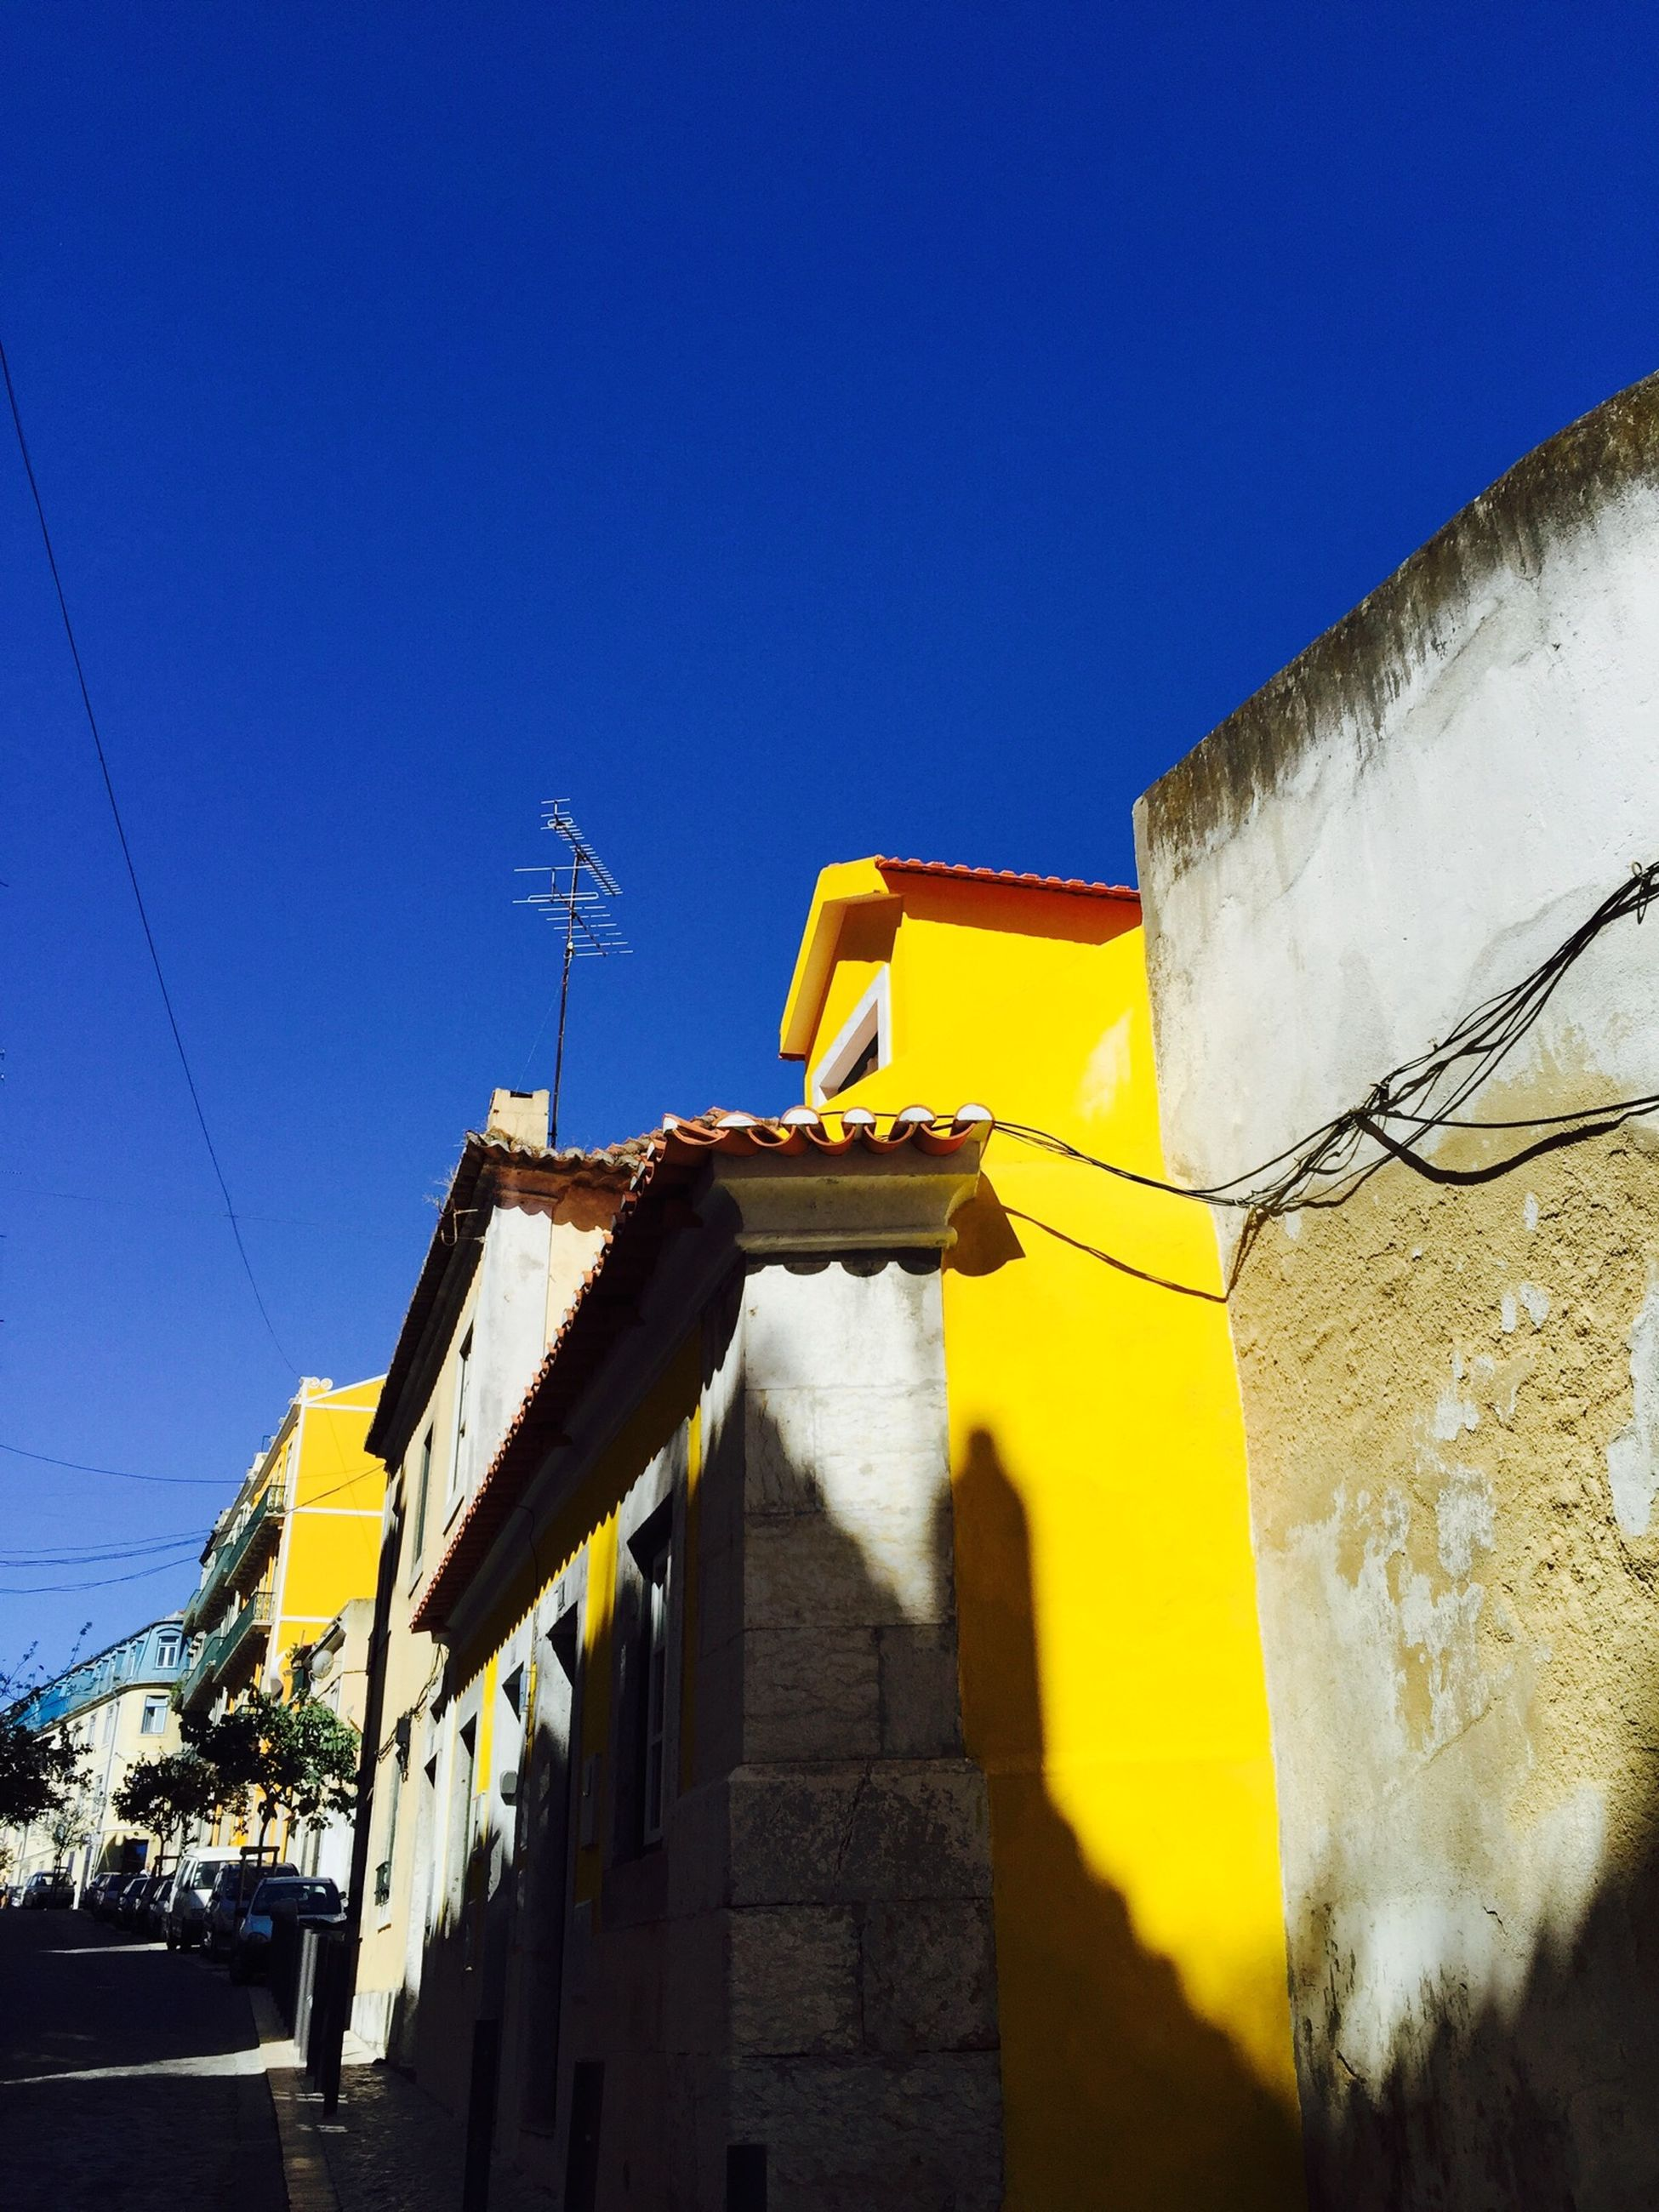 clear sky, architecture, building exterior, built structure, blue, low angle view, yellow, copy space, wall - building feature, sunlight, street, street light, outdoors, shadow, day, no people, building, sky, road, wall